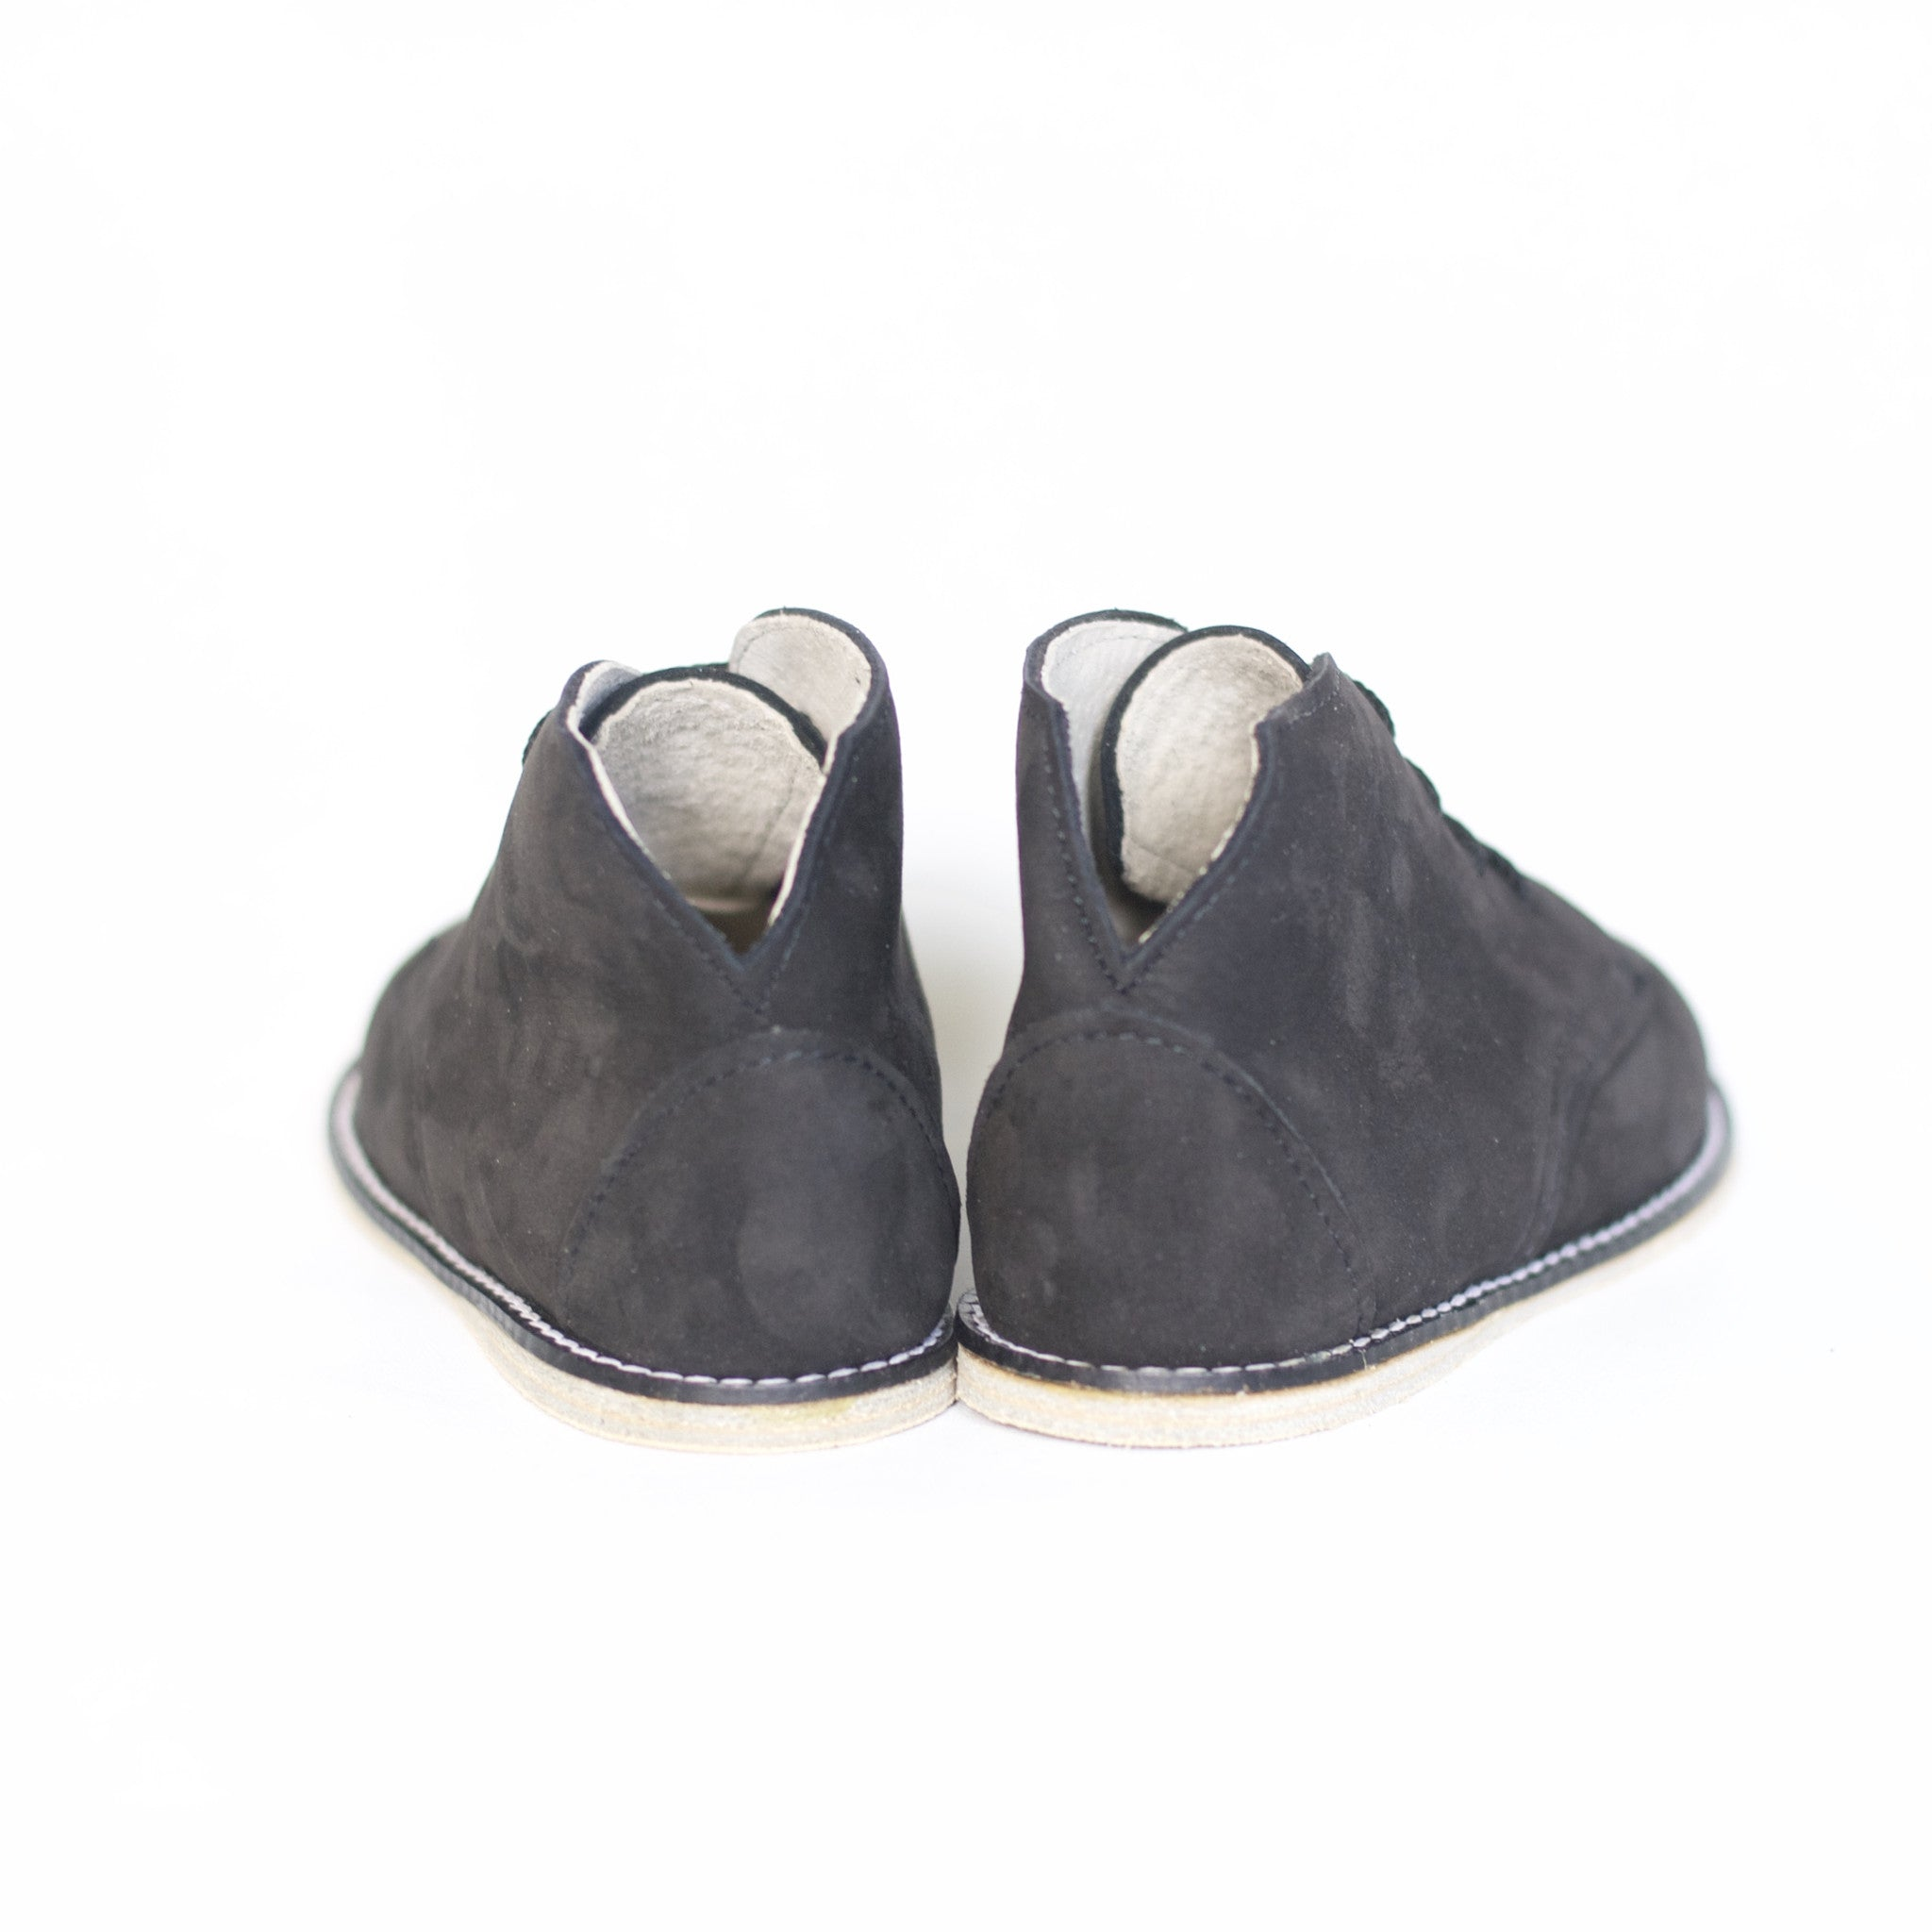 Milo Boot in Charcoal | Sizes 4-12